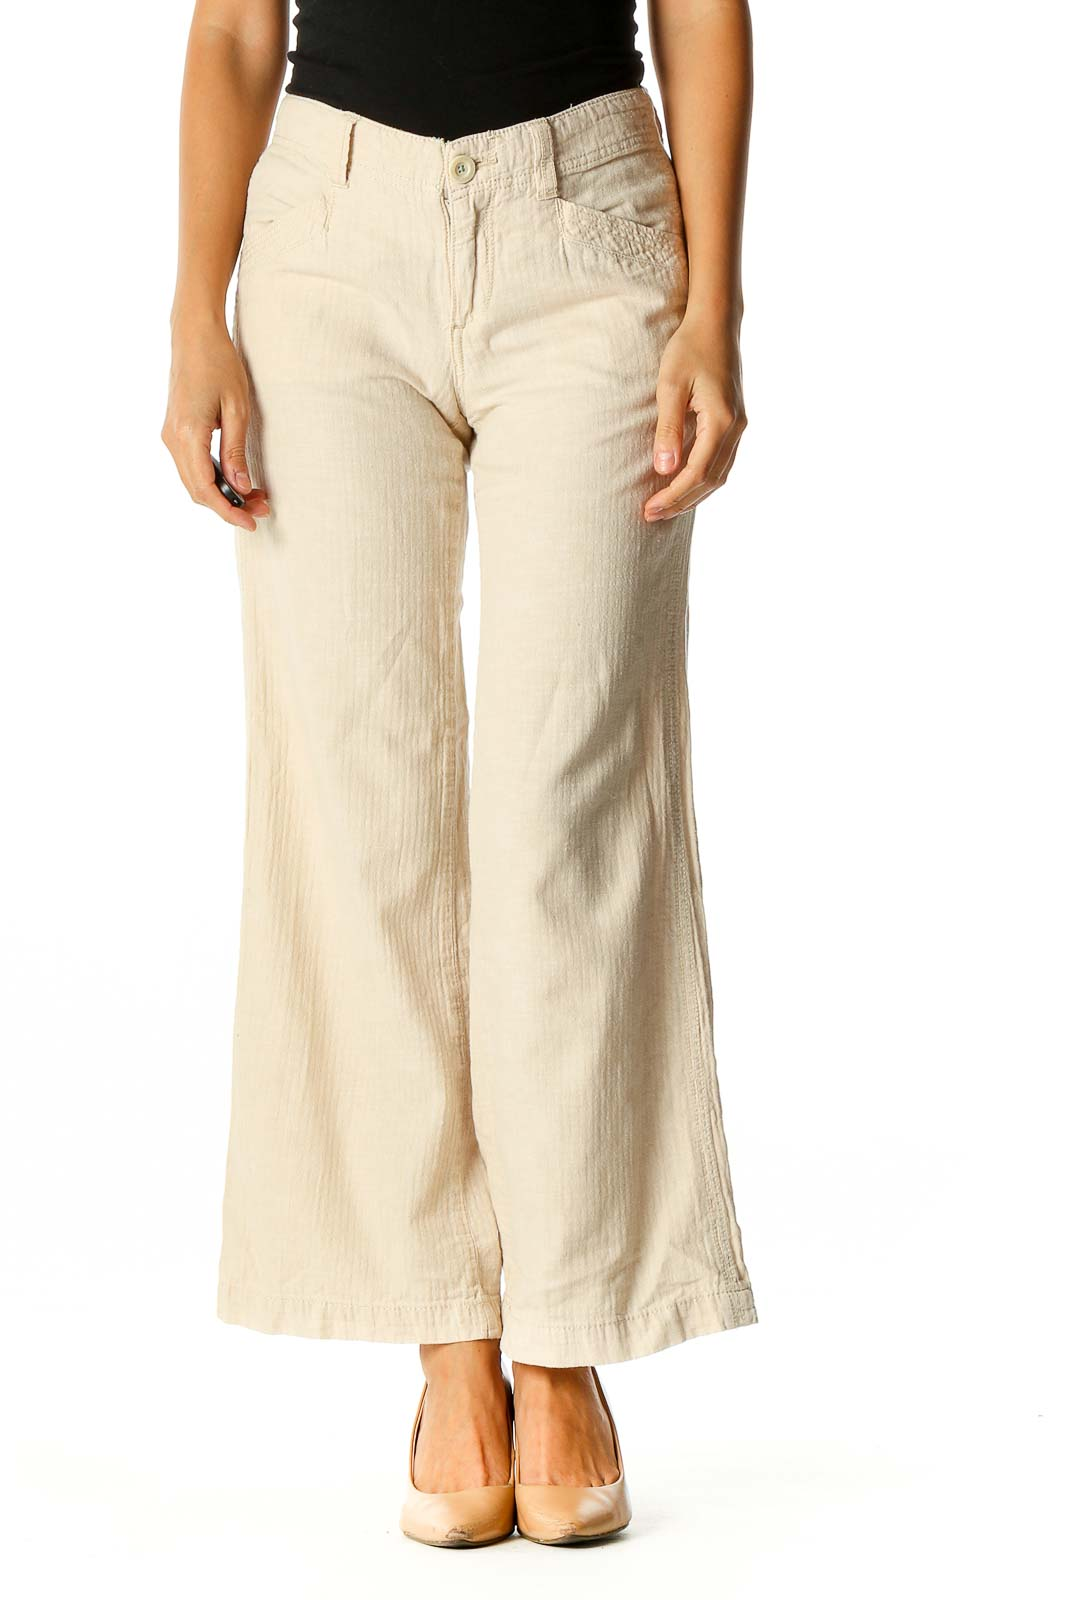 Beige Solid Casual Trousers Front